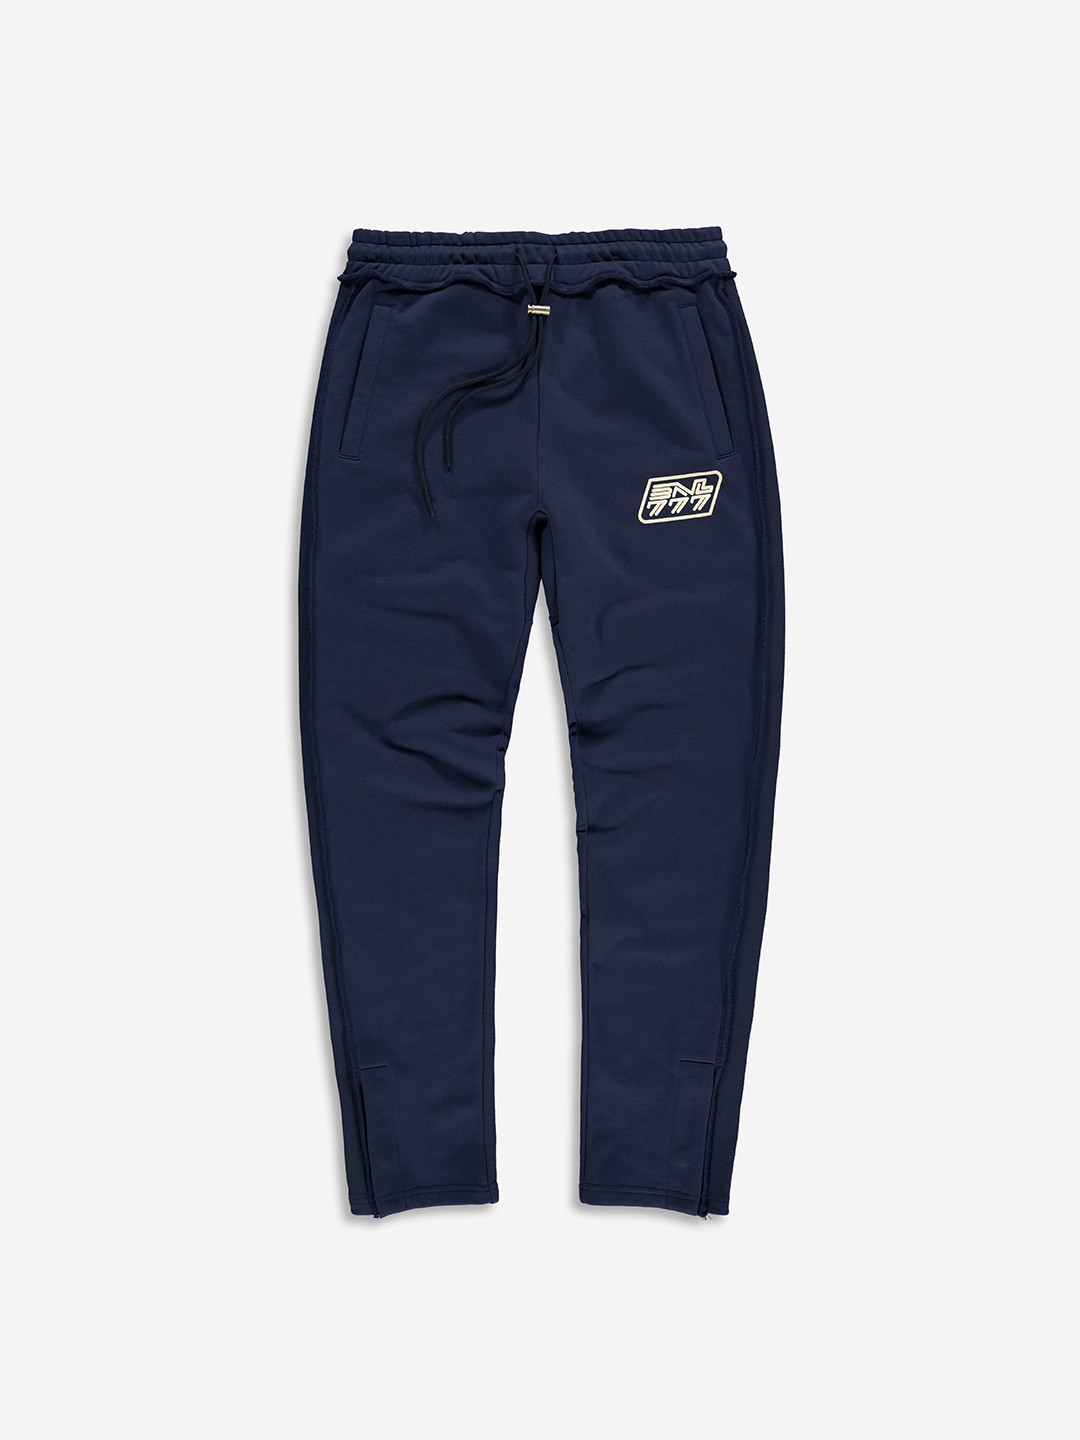 BNL777 SWEATPANTS NAVY